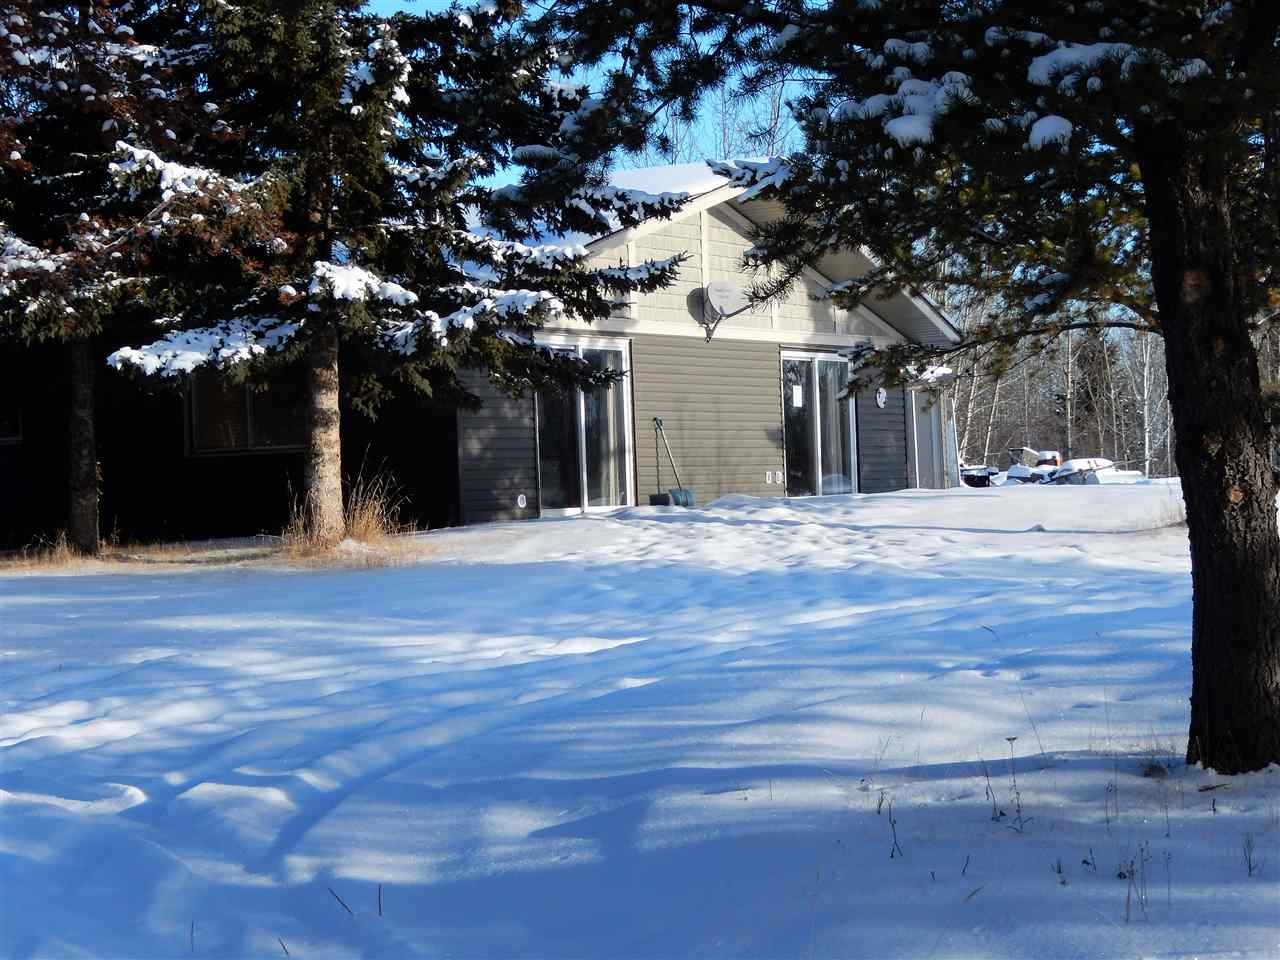 GREAT LOCATION! Singing Hills subdivision sits west of SEBA BEACH COMMUNITY. This quaint 1020 sq ft bungalow sits on a nice private lot with plenty of trees surrounding a large cleared area. The layout is quite open & has 2 bedrs & 1 bath. The year is estimated to be a 1982.  Most of the walls are done in PINE TONGUE & GROOVE to create a cozy feel. The floors are LAMINATE PLANKING/CERAMIC TILES. There is a 10x34 CONCRETE PATIO at the front of home. Property is partially fenced with CHAIN LINK on one side & other types of fencing on the other sides.